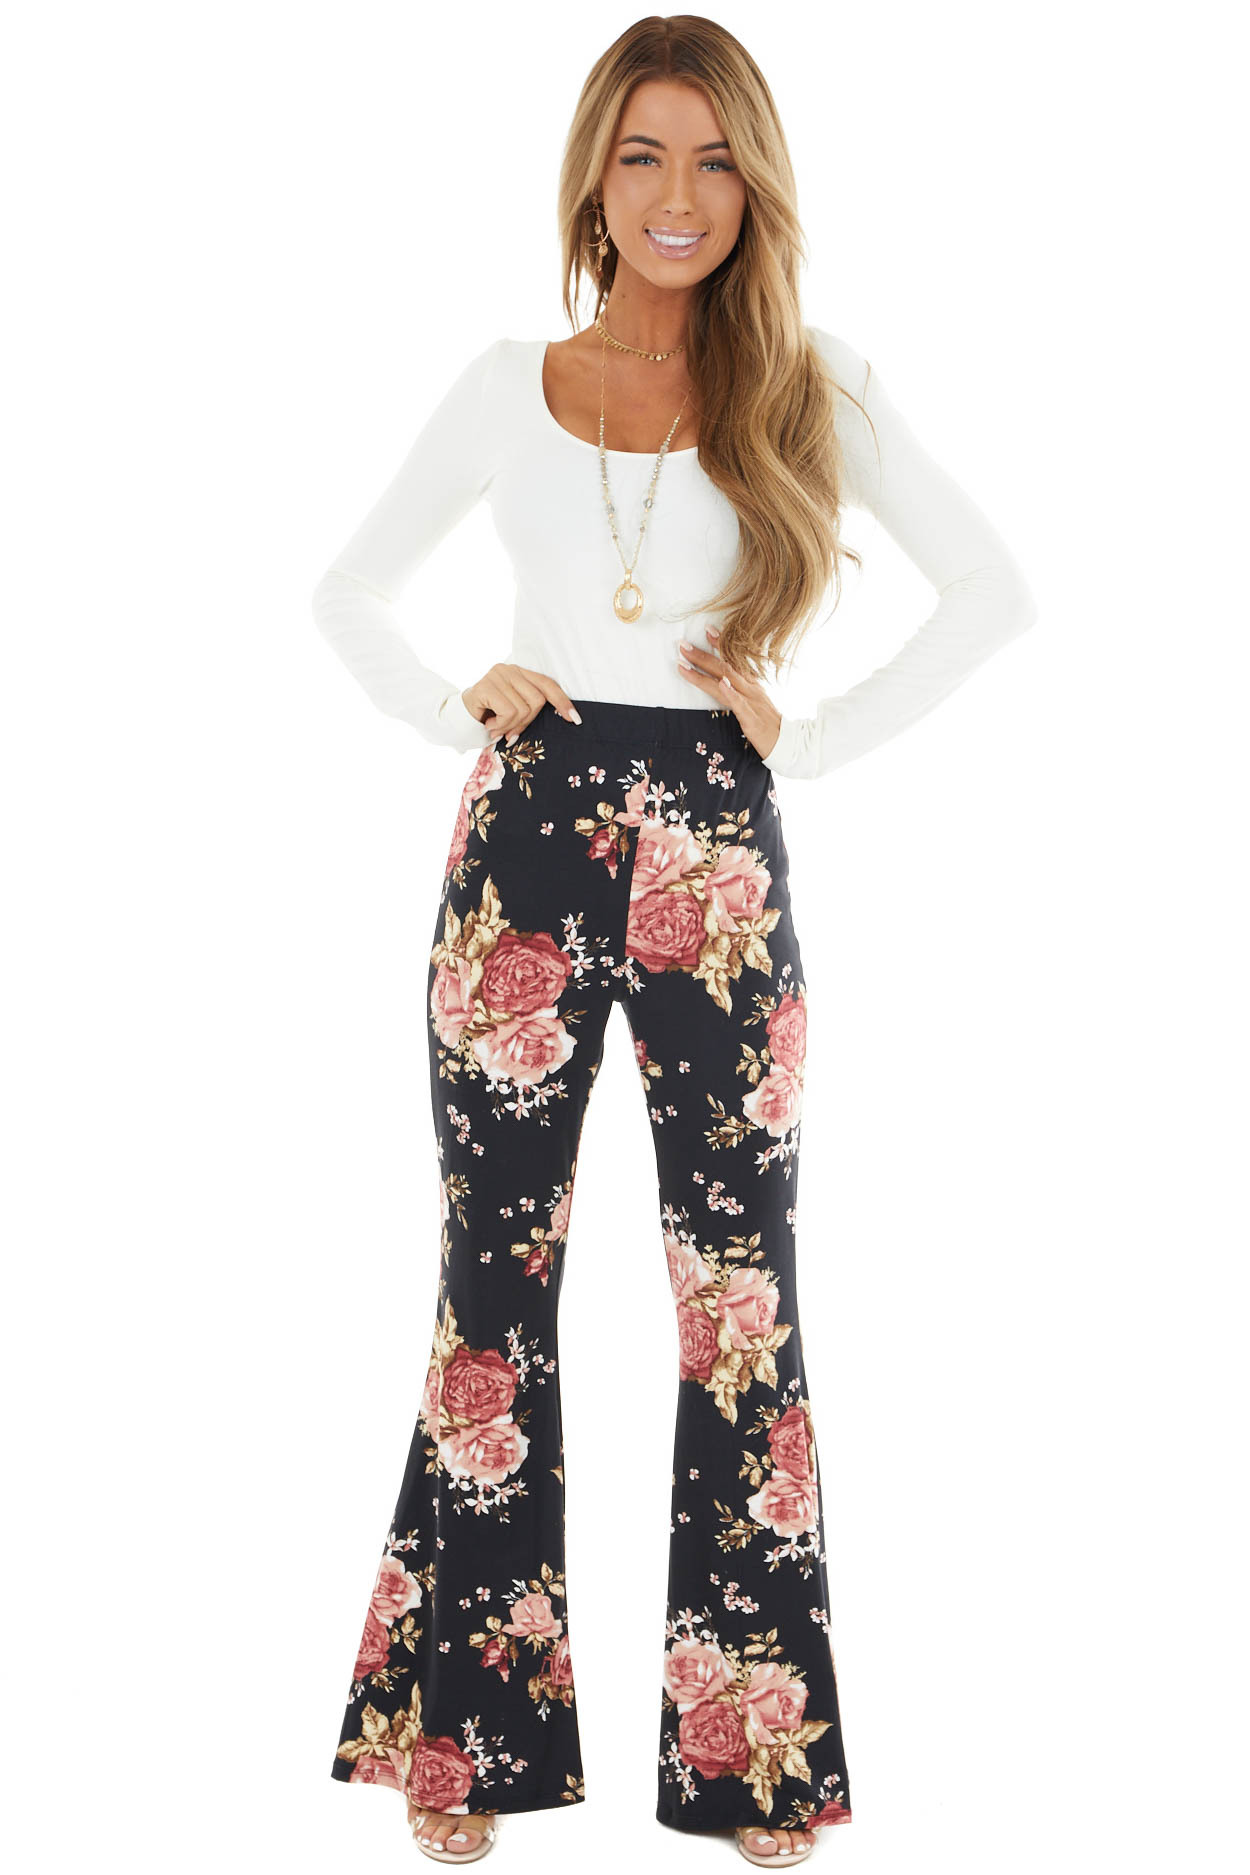 Black Floral Print Stretchy Knit Bell Bottom Pants